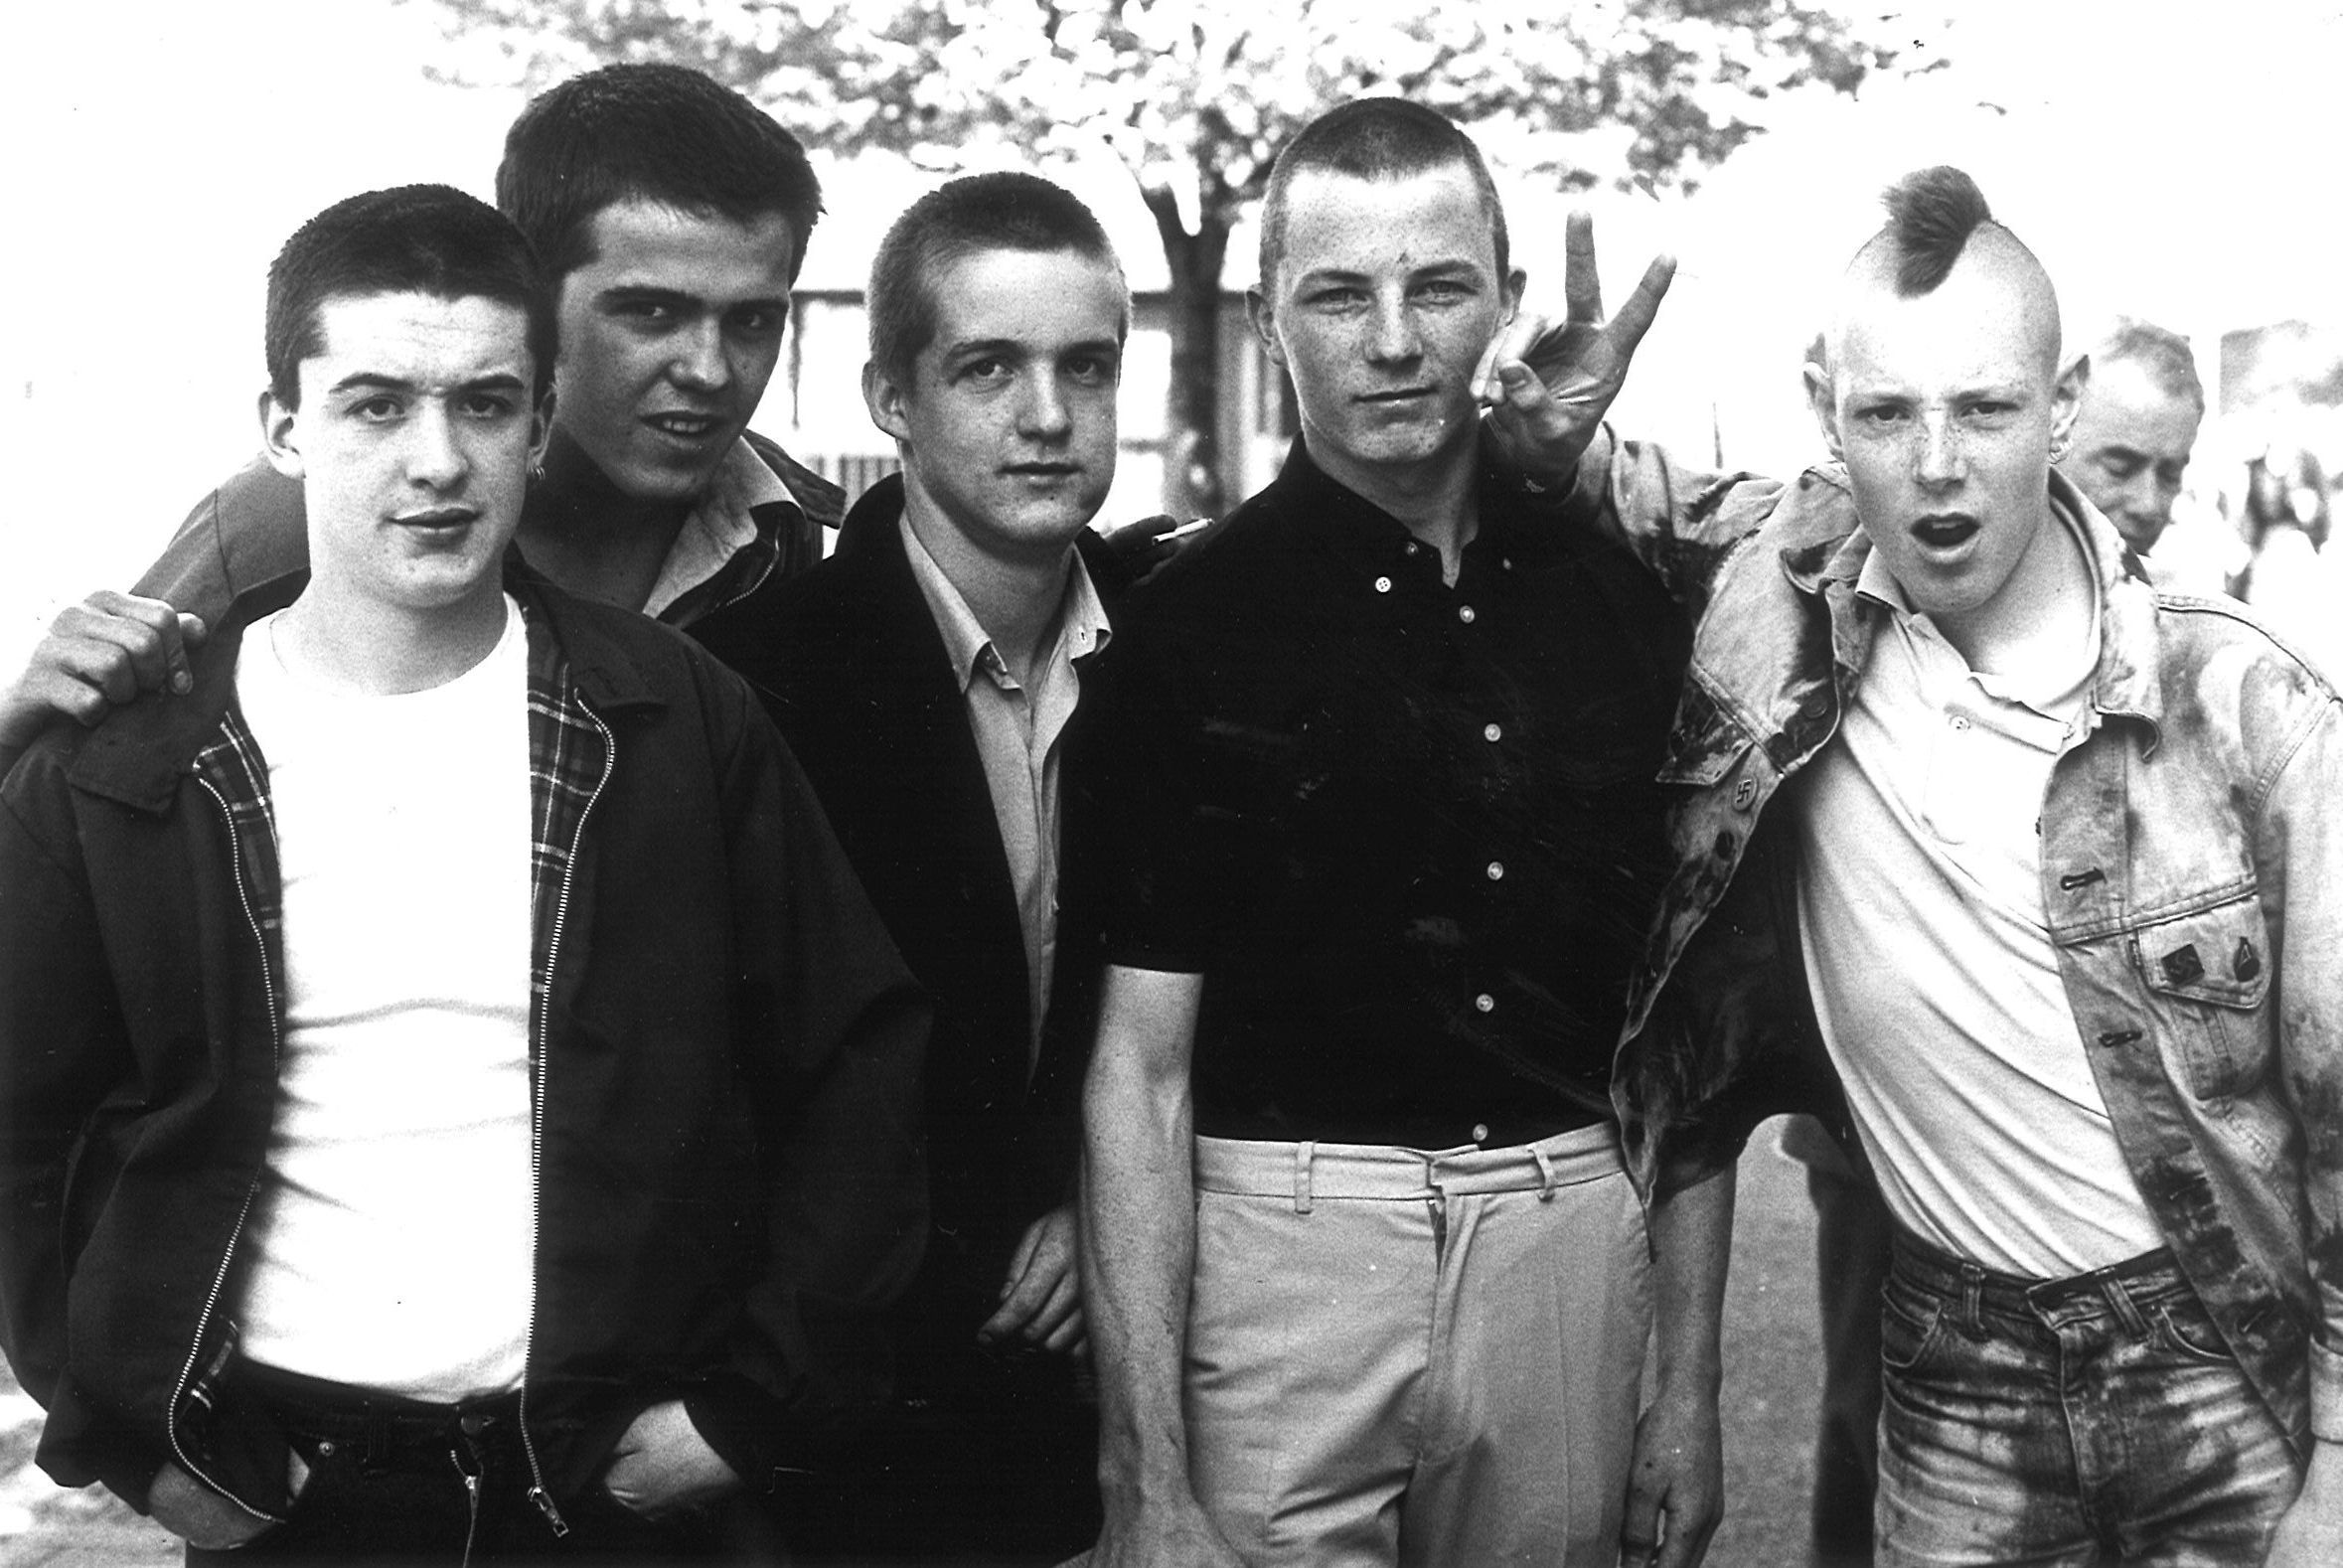 Why do not they catch skinheads because they are criminals 41